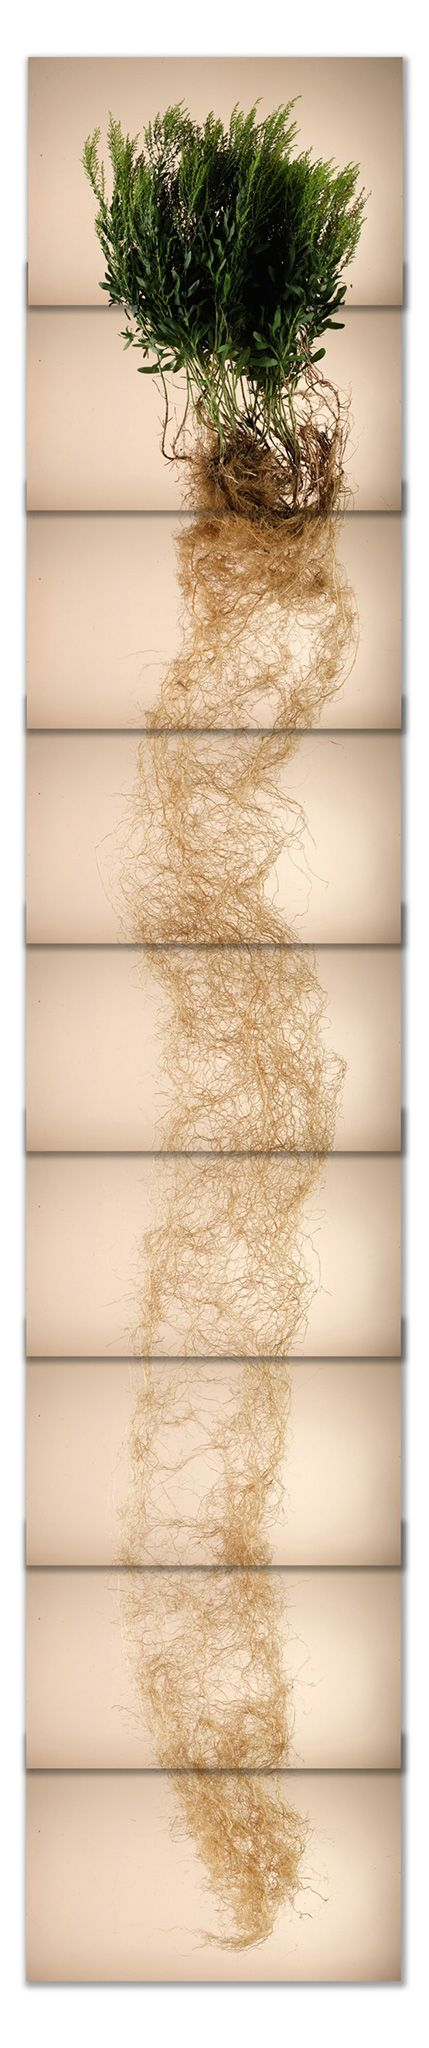 Vertical panorama of a Missouri Goldenrod grass plant and its long root structure